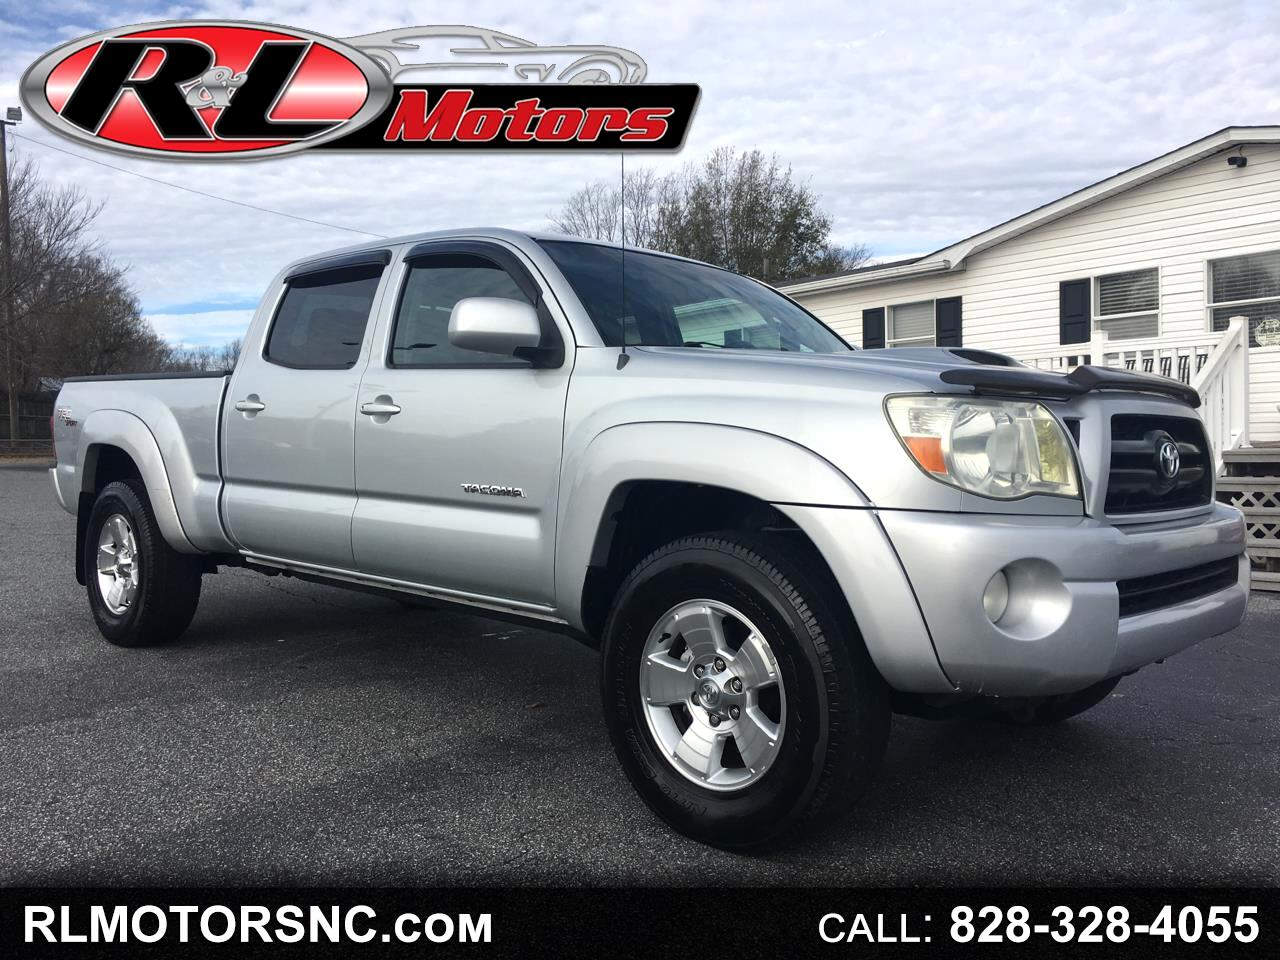 Buy Here Pay Here 2005 Toyota Tacoma For Sale In Hickory Nc 28601 R